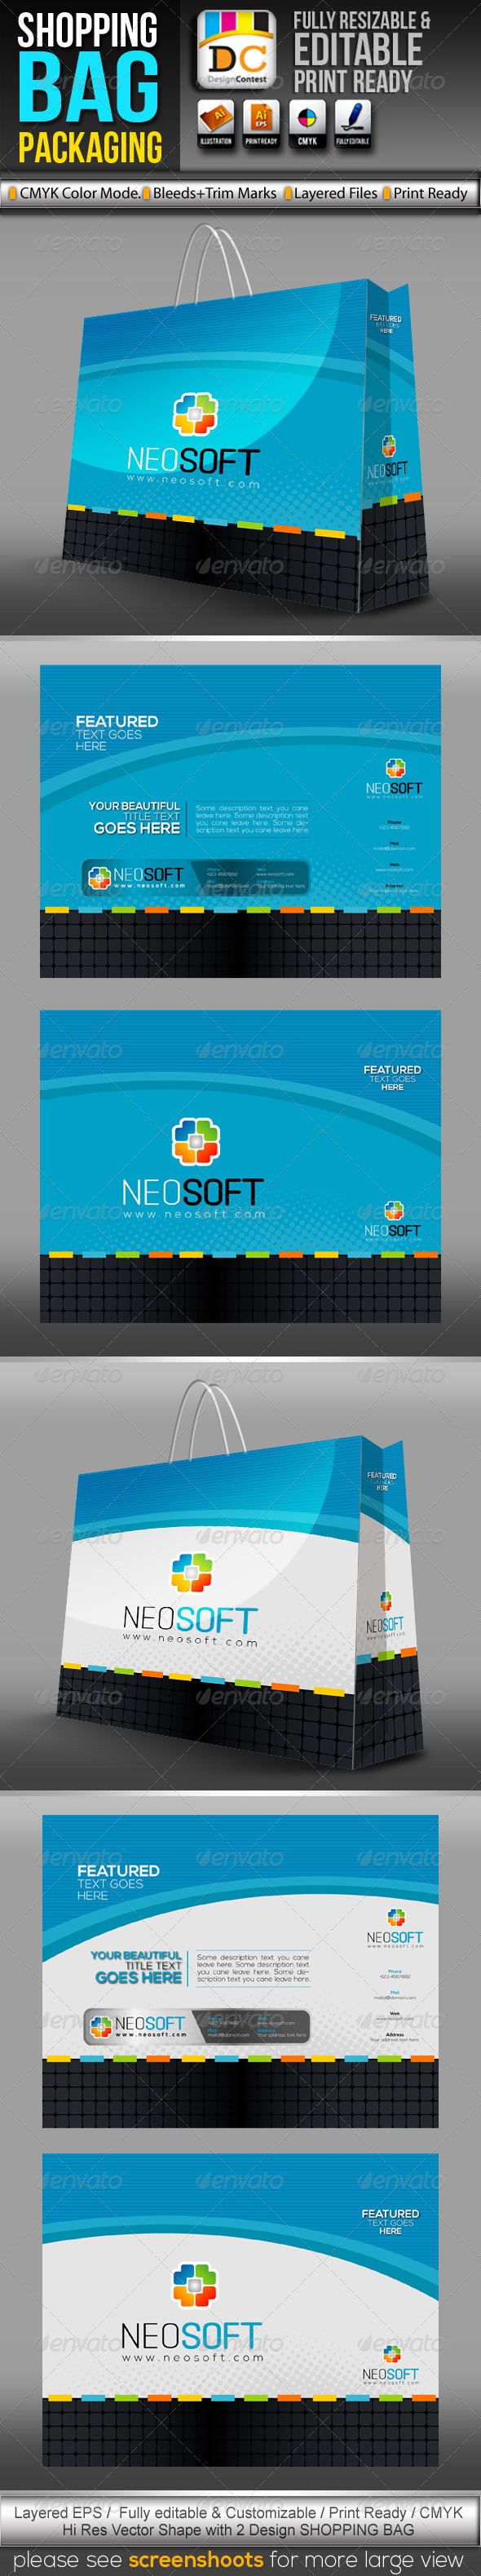 NeoSoft_Shopping Bag Packaging  - Packaging Print Templates